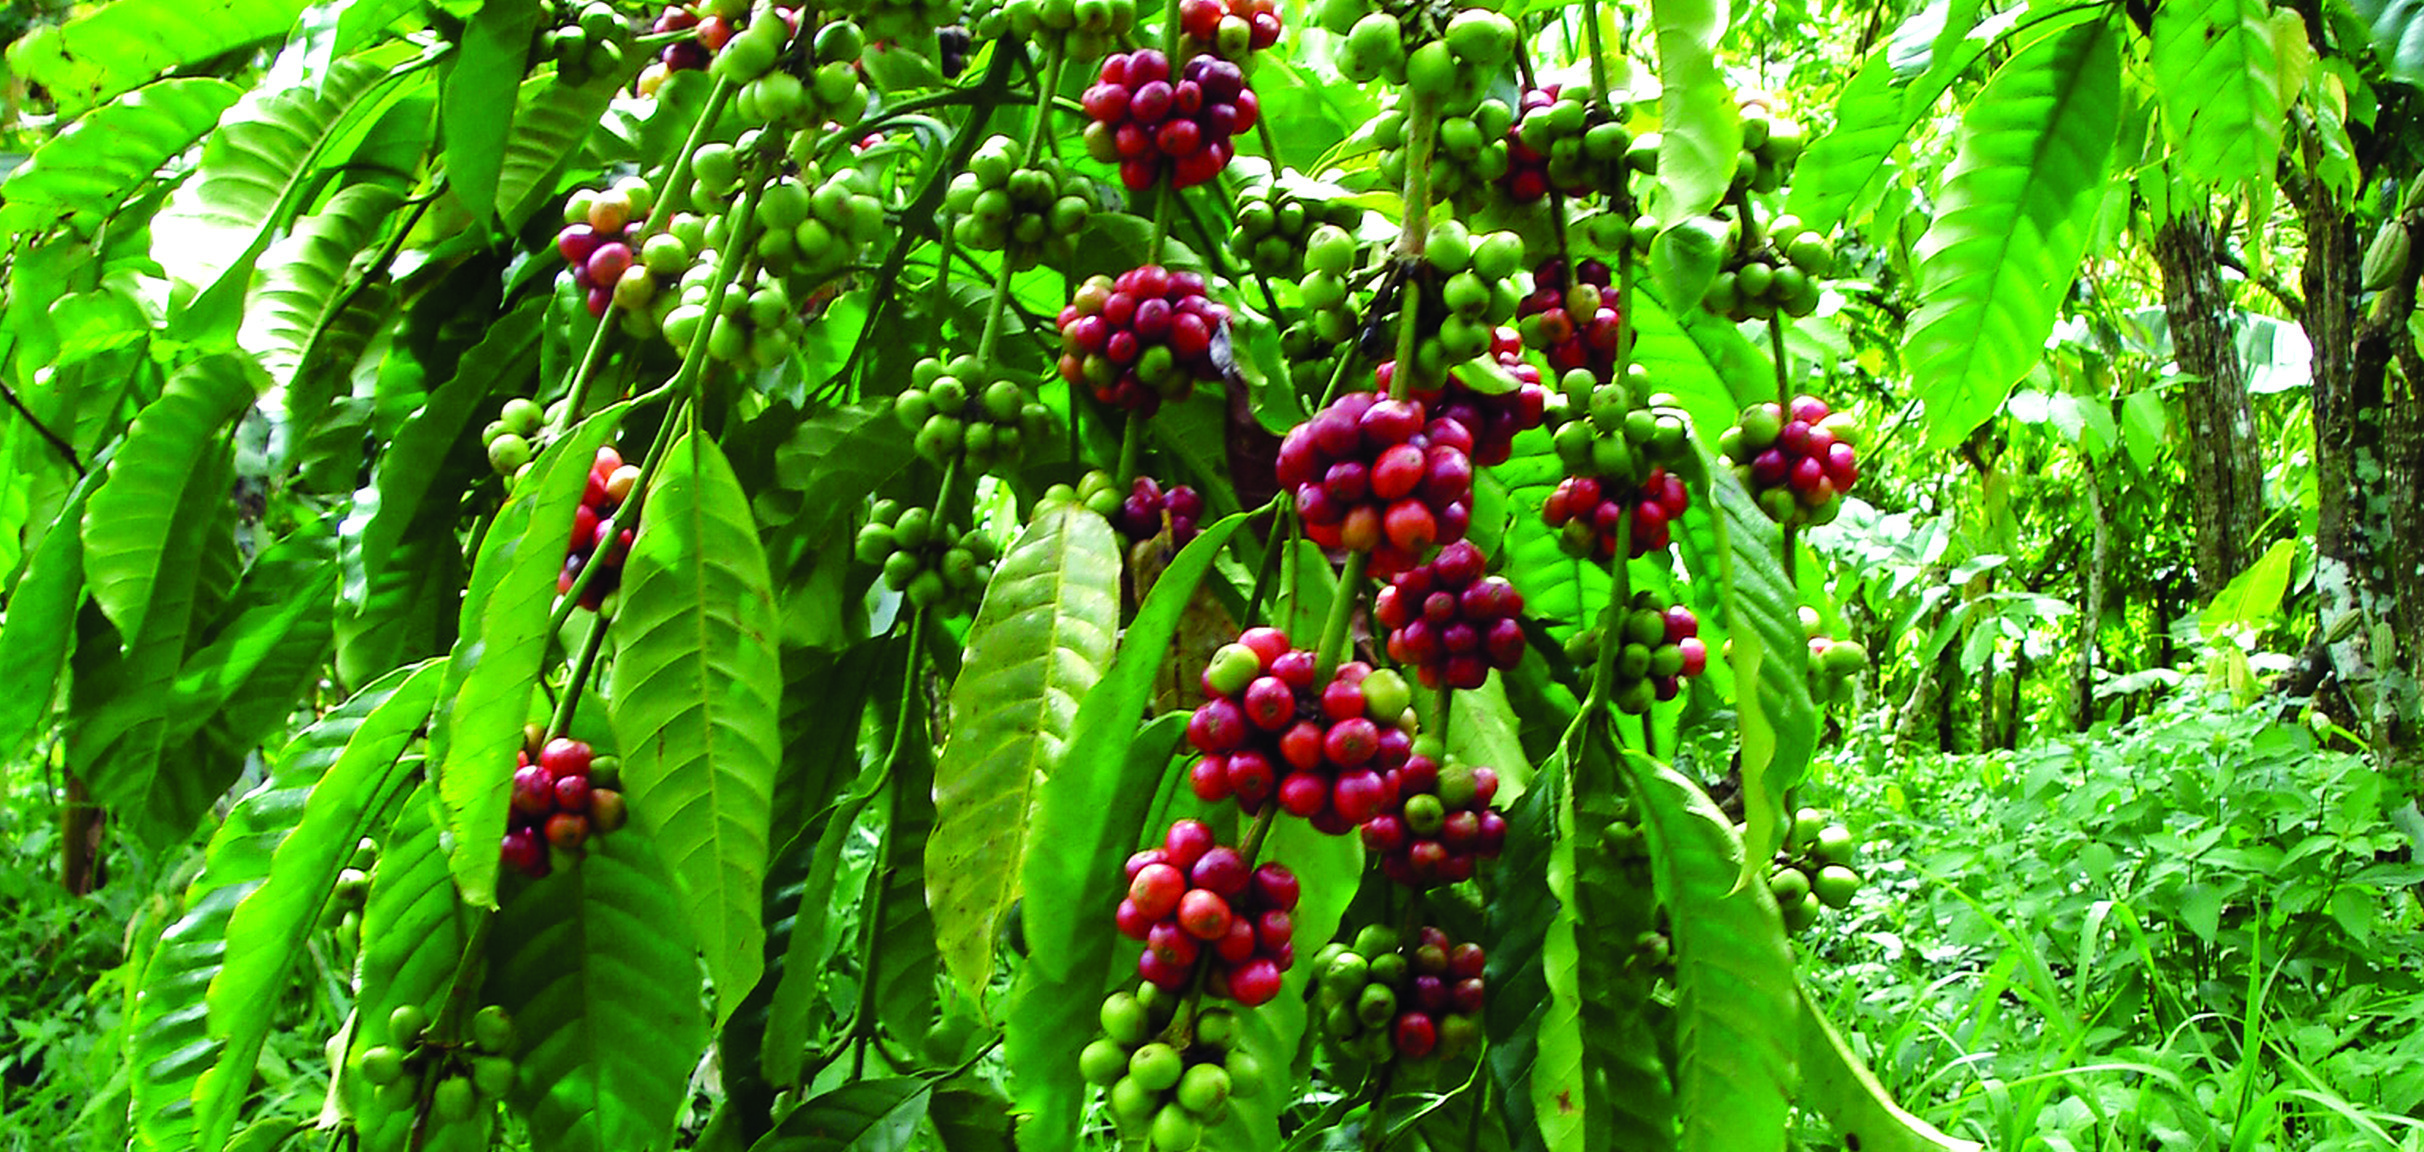 Foliar sprays of Omex CalMax reduce berry drop to give more coffee cherries per cluster.